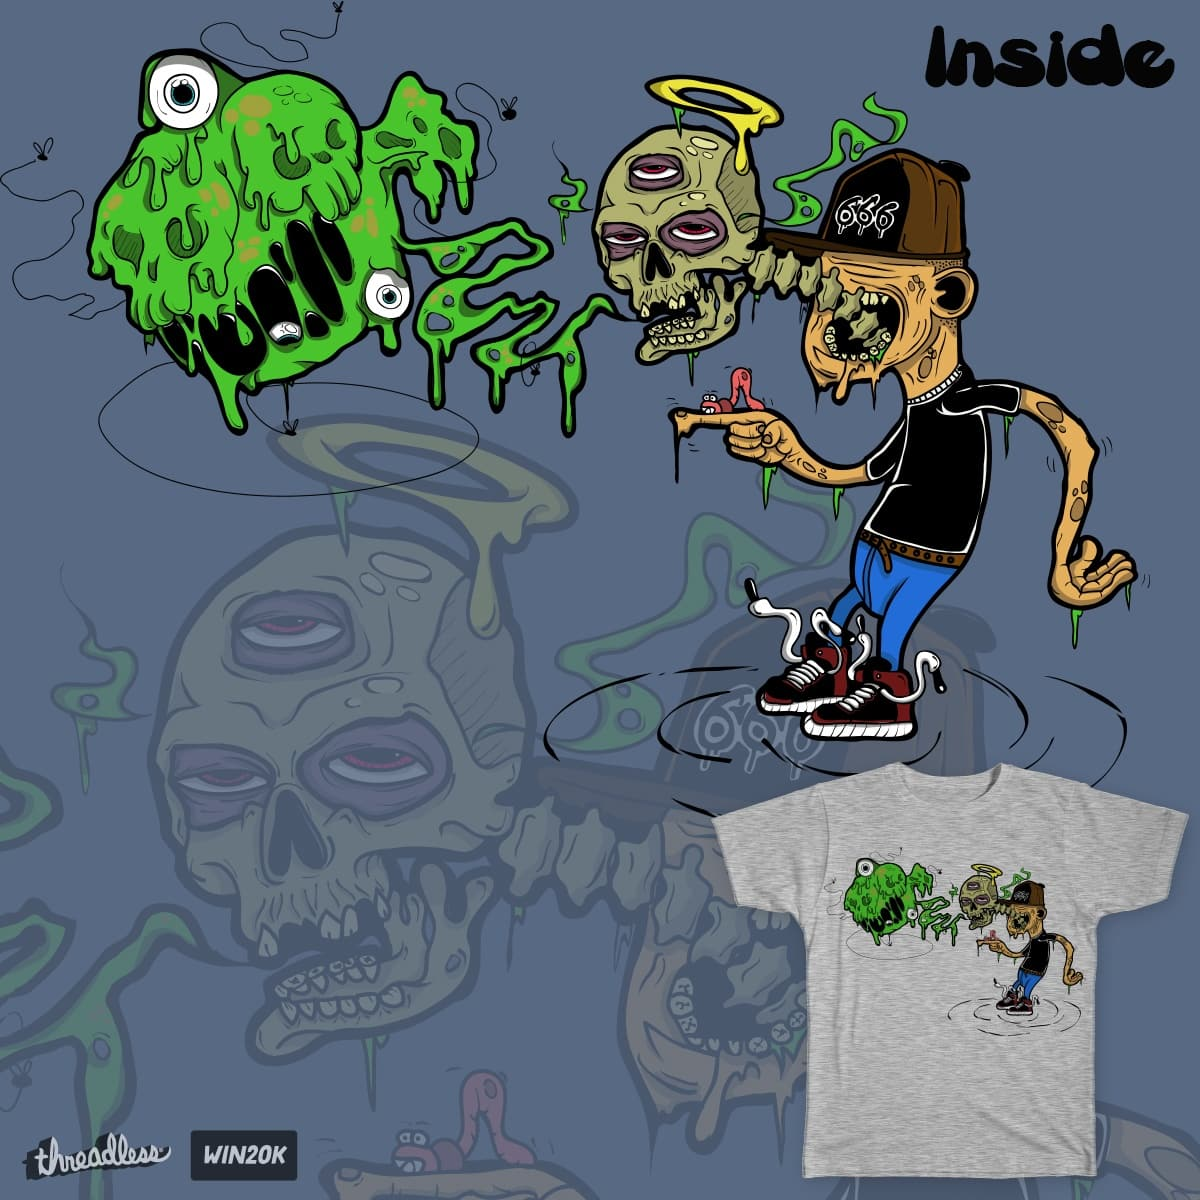 Inside by bombilloag on Threadless